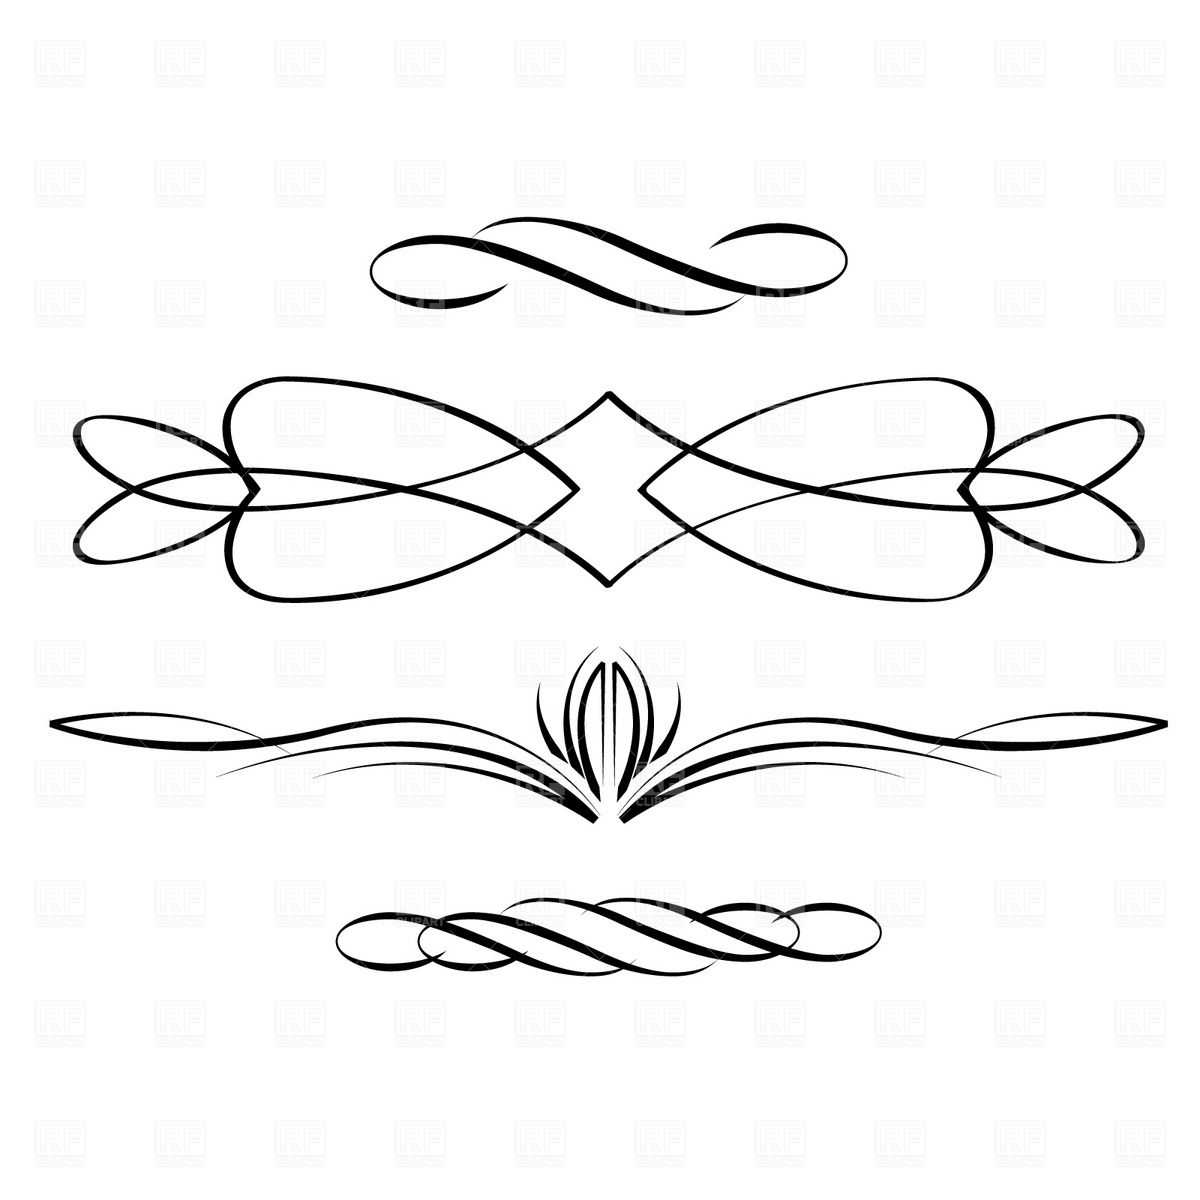 Scroll clipart line. Free scrolling designs cliparts